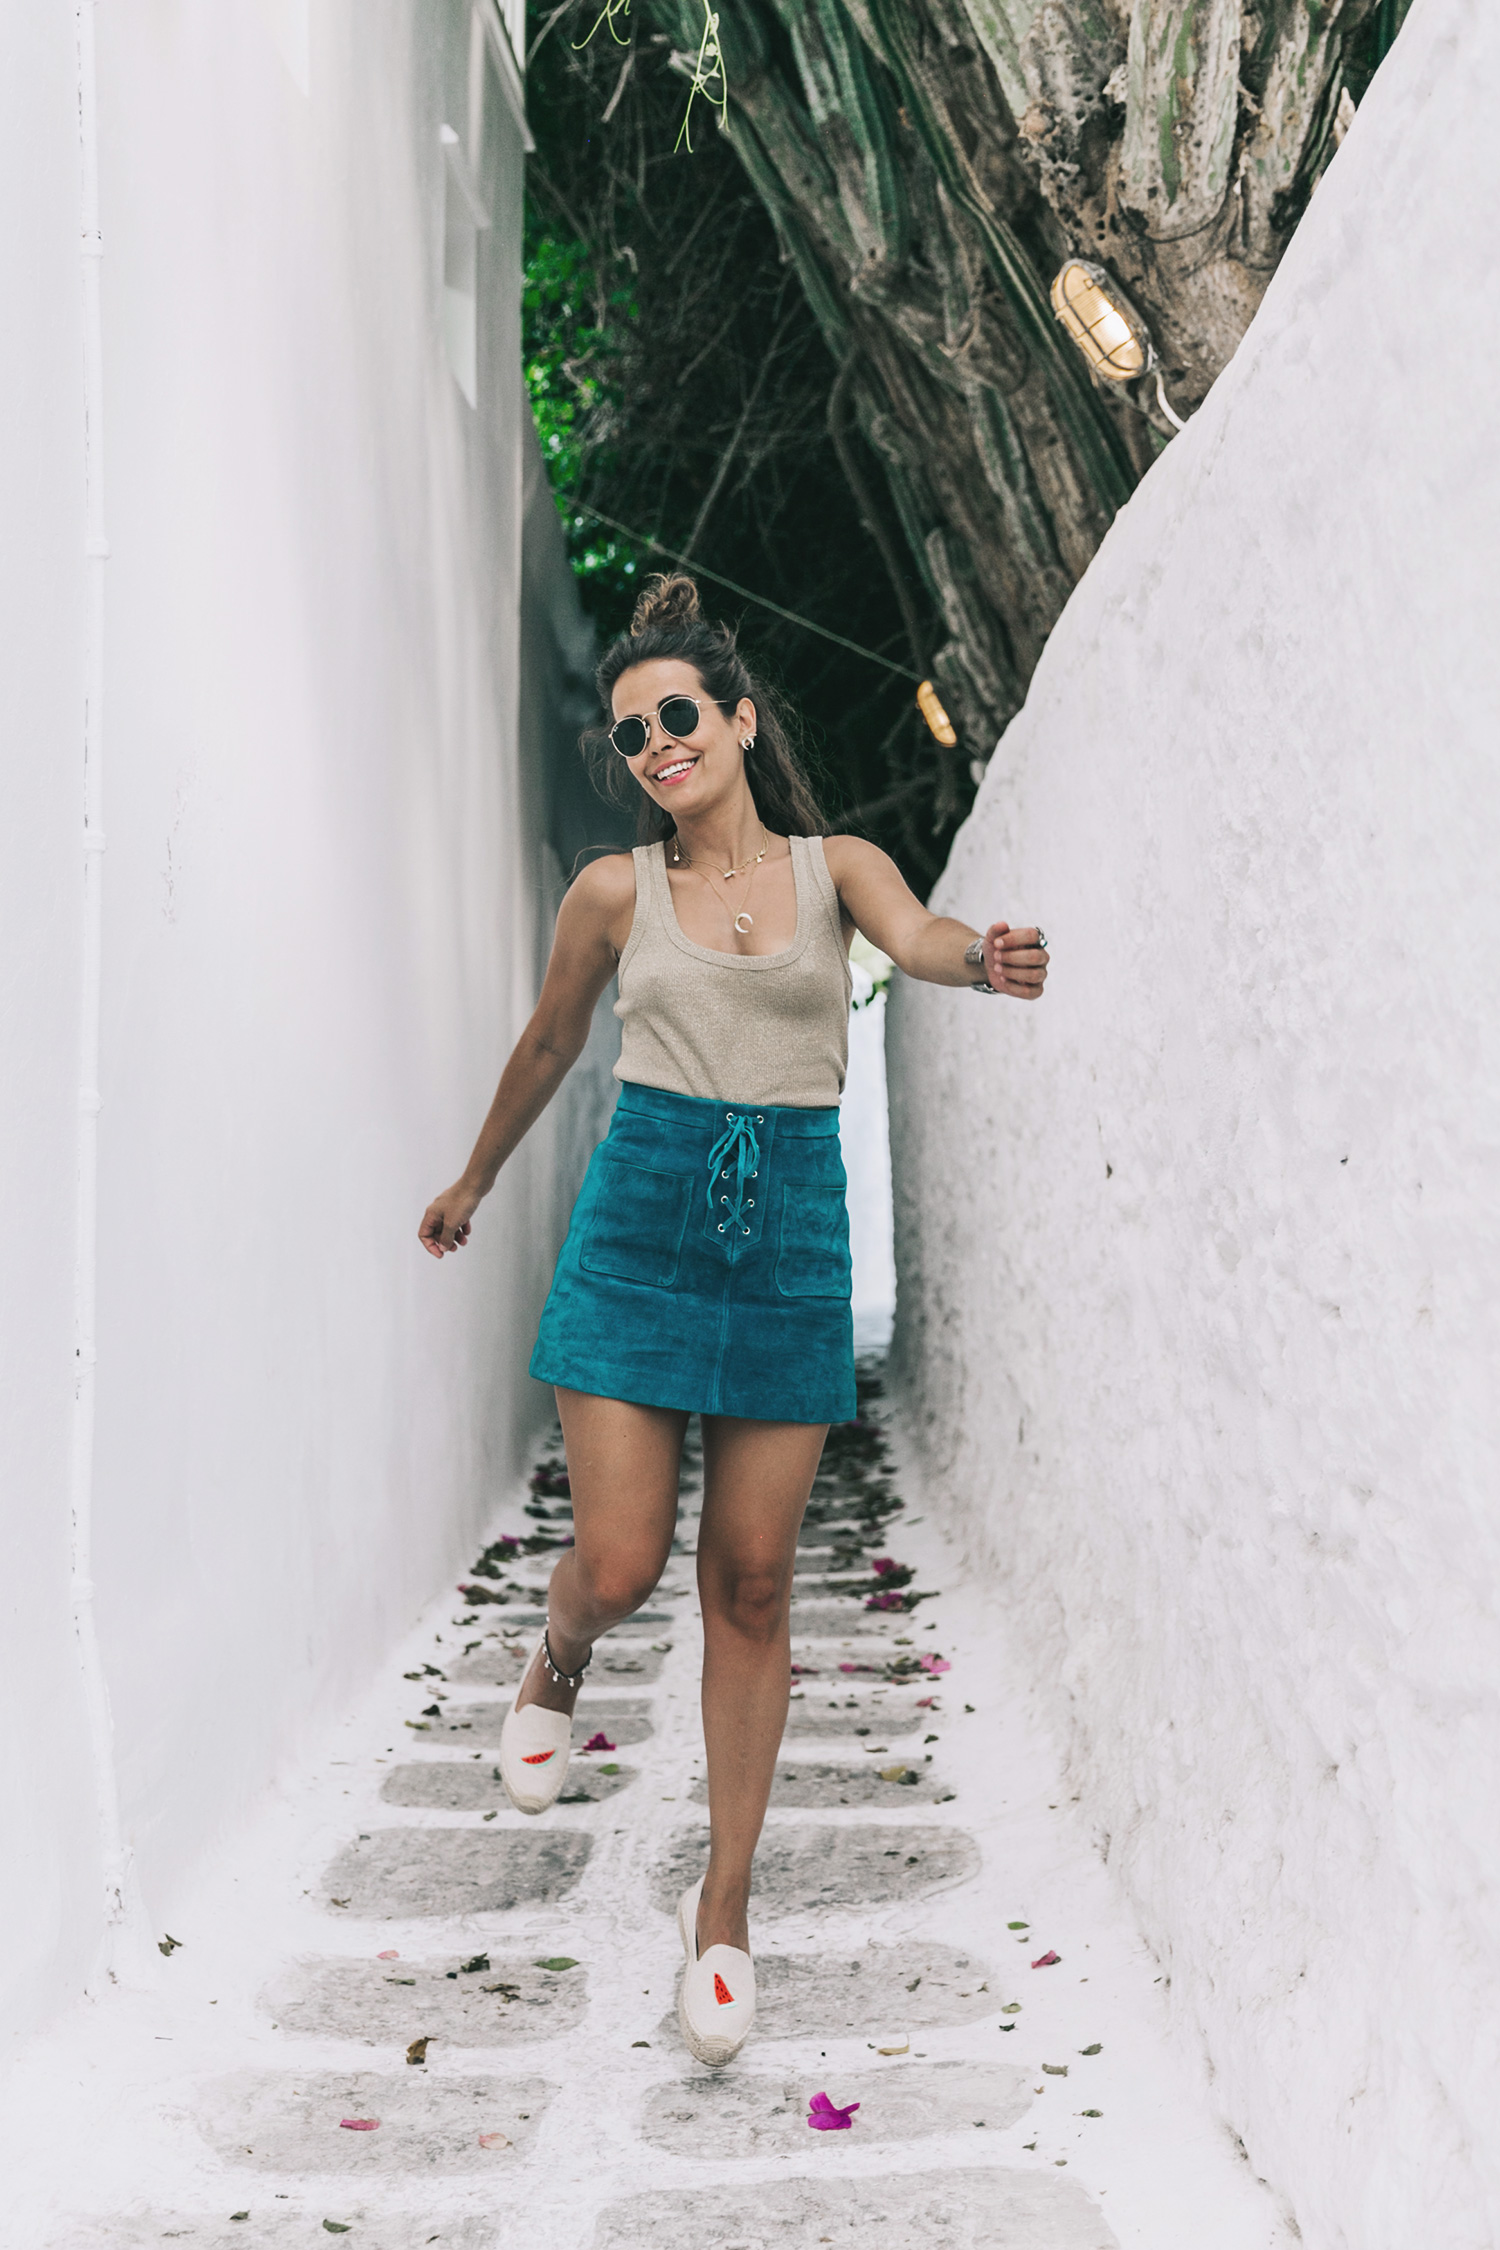 Gold_Top-Metallic_Trend-Suede_Skirt-Turquoise_Skirt-Soludos_Espadrilles-Soludos_Escapes-Mykonos-Greece-Collage_Vintage-Street_Style-53